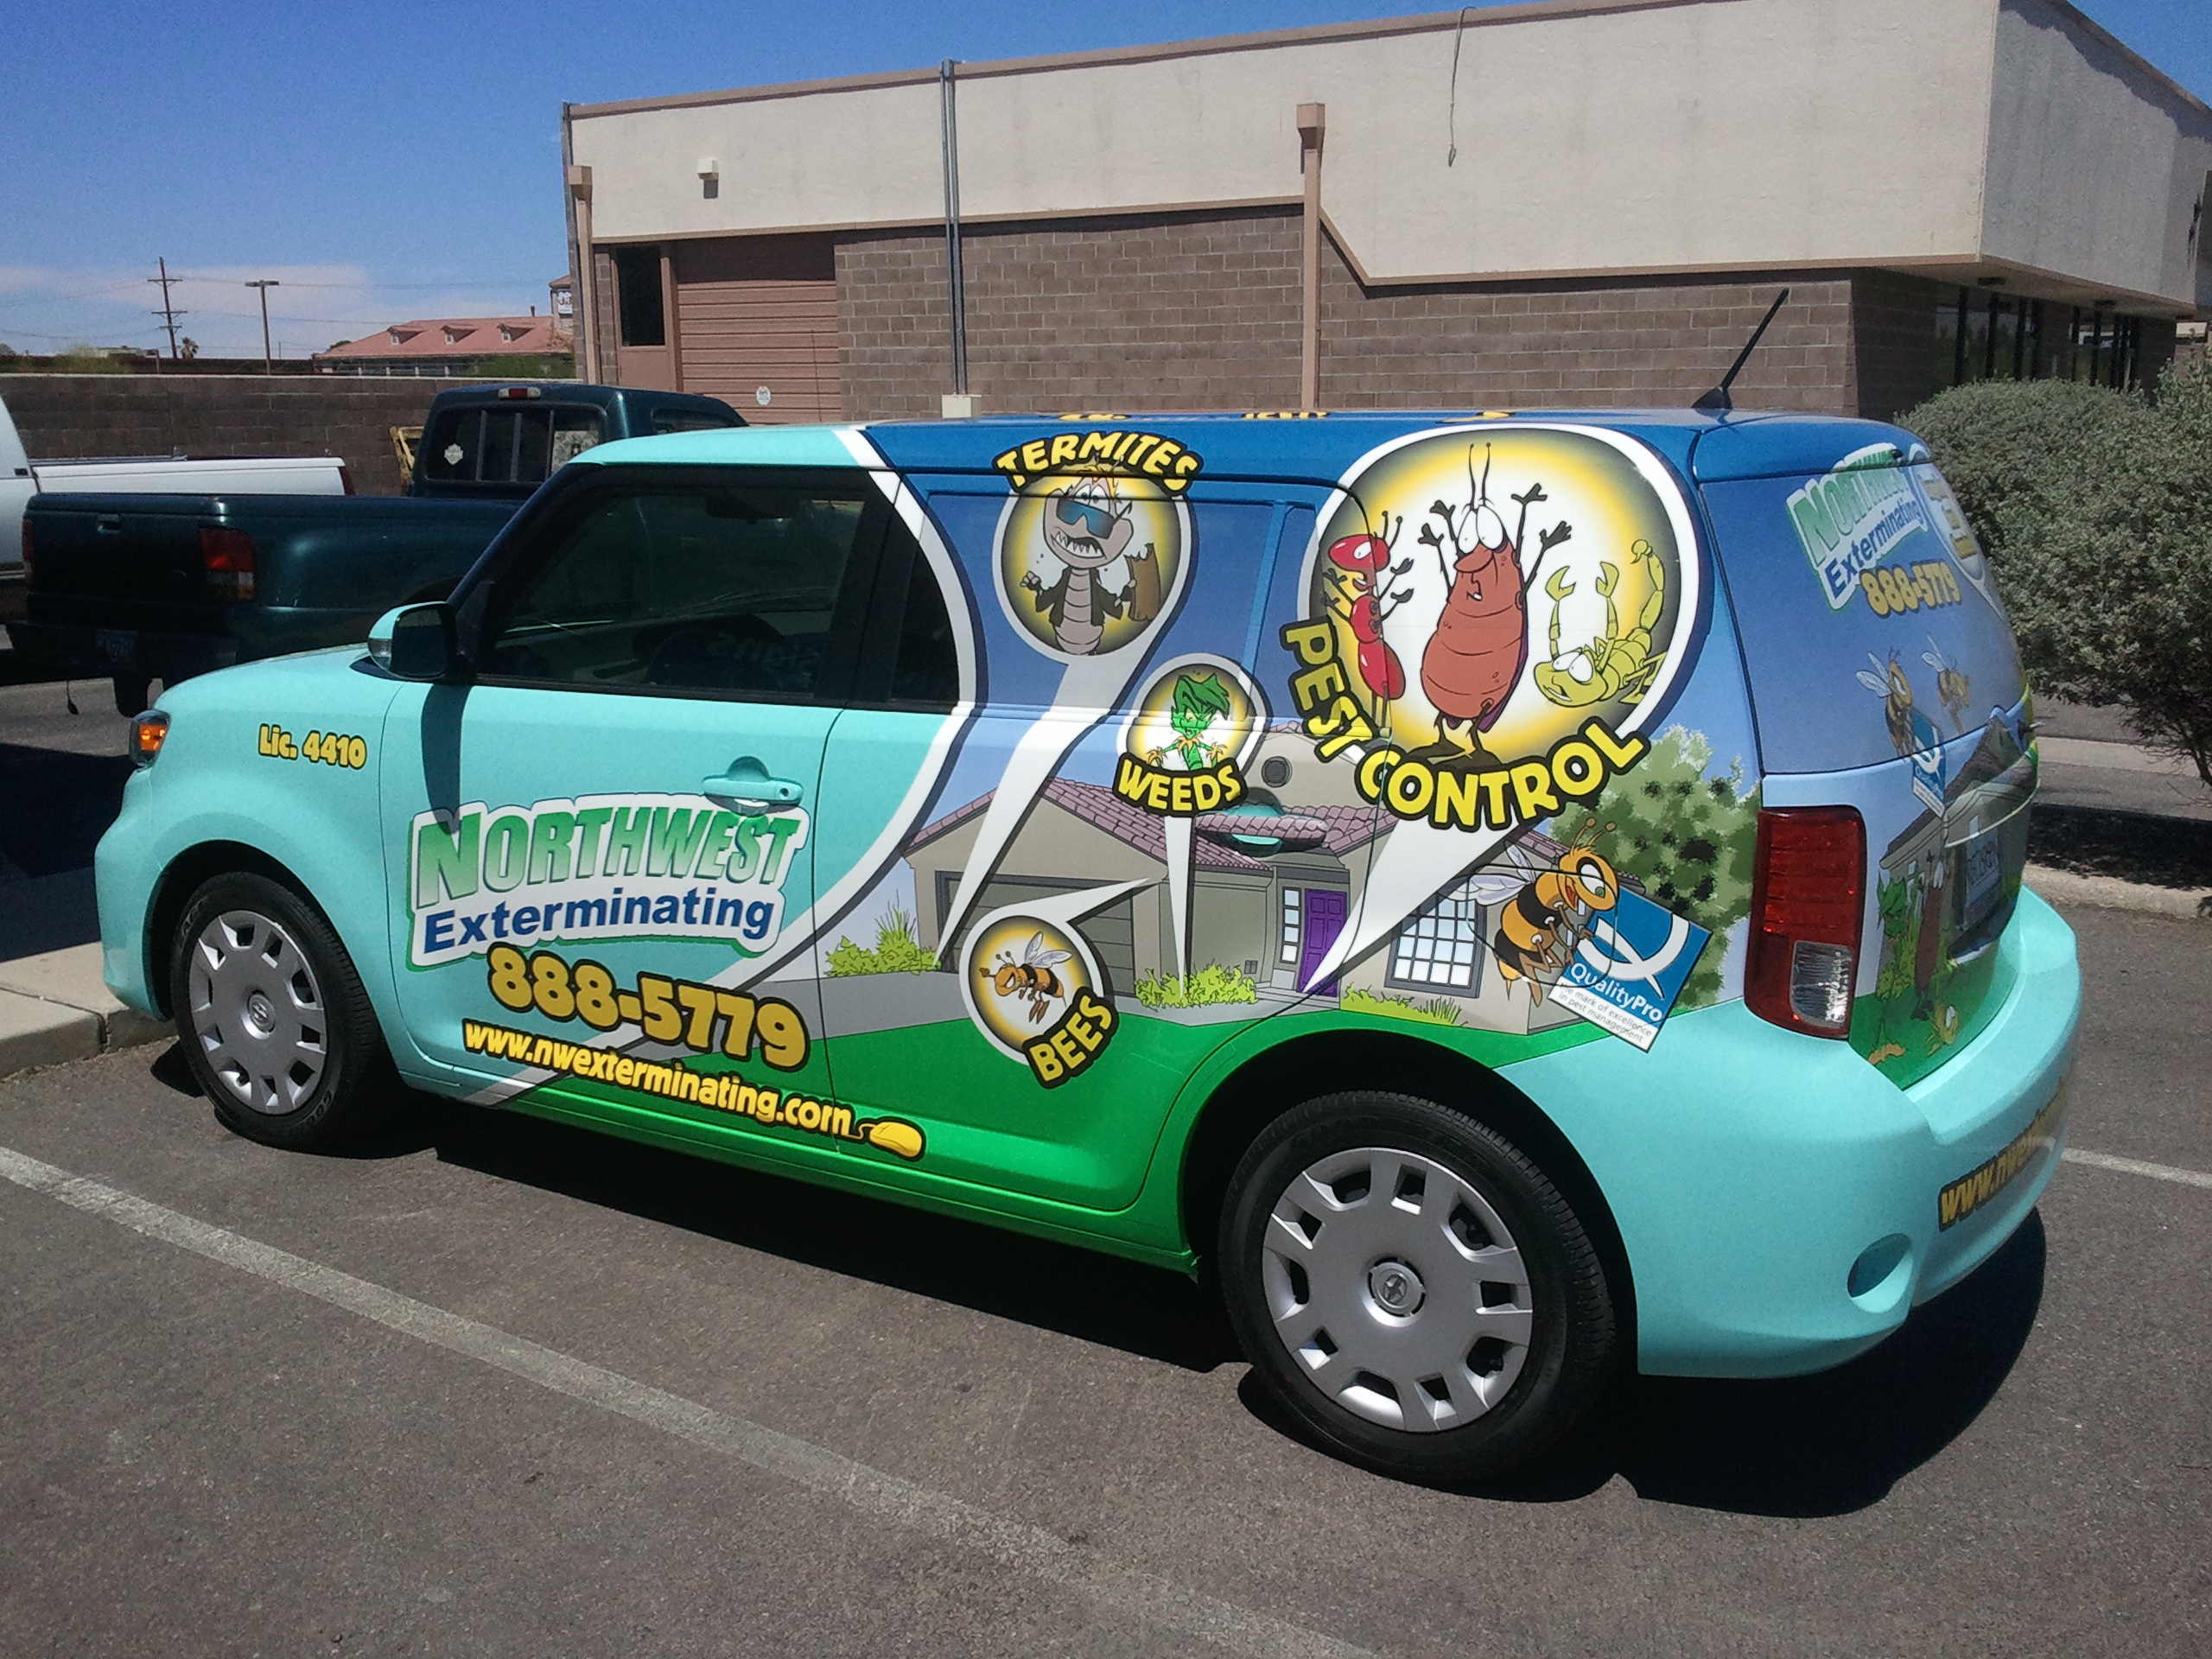 Thank You Northwest Exterminating For Allowing Us To Do These Wraps